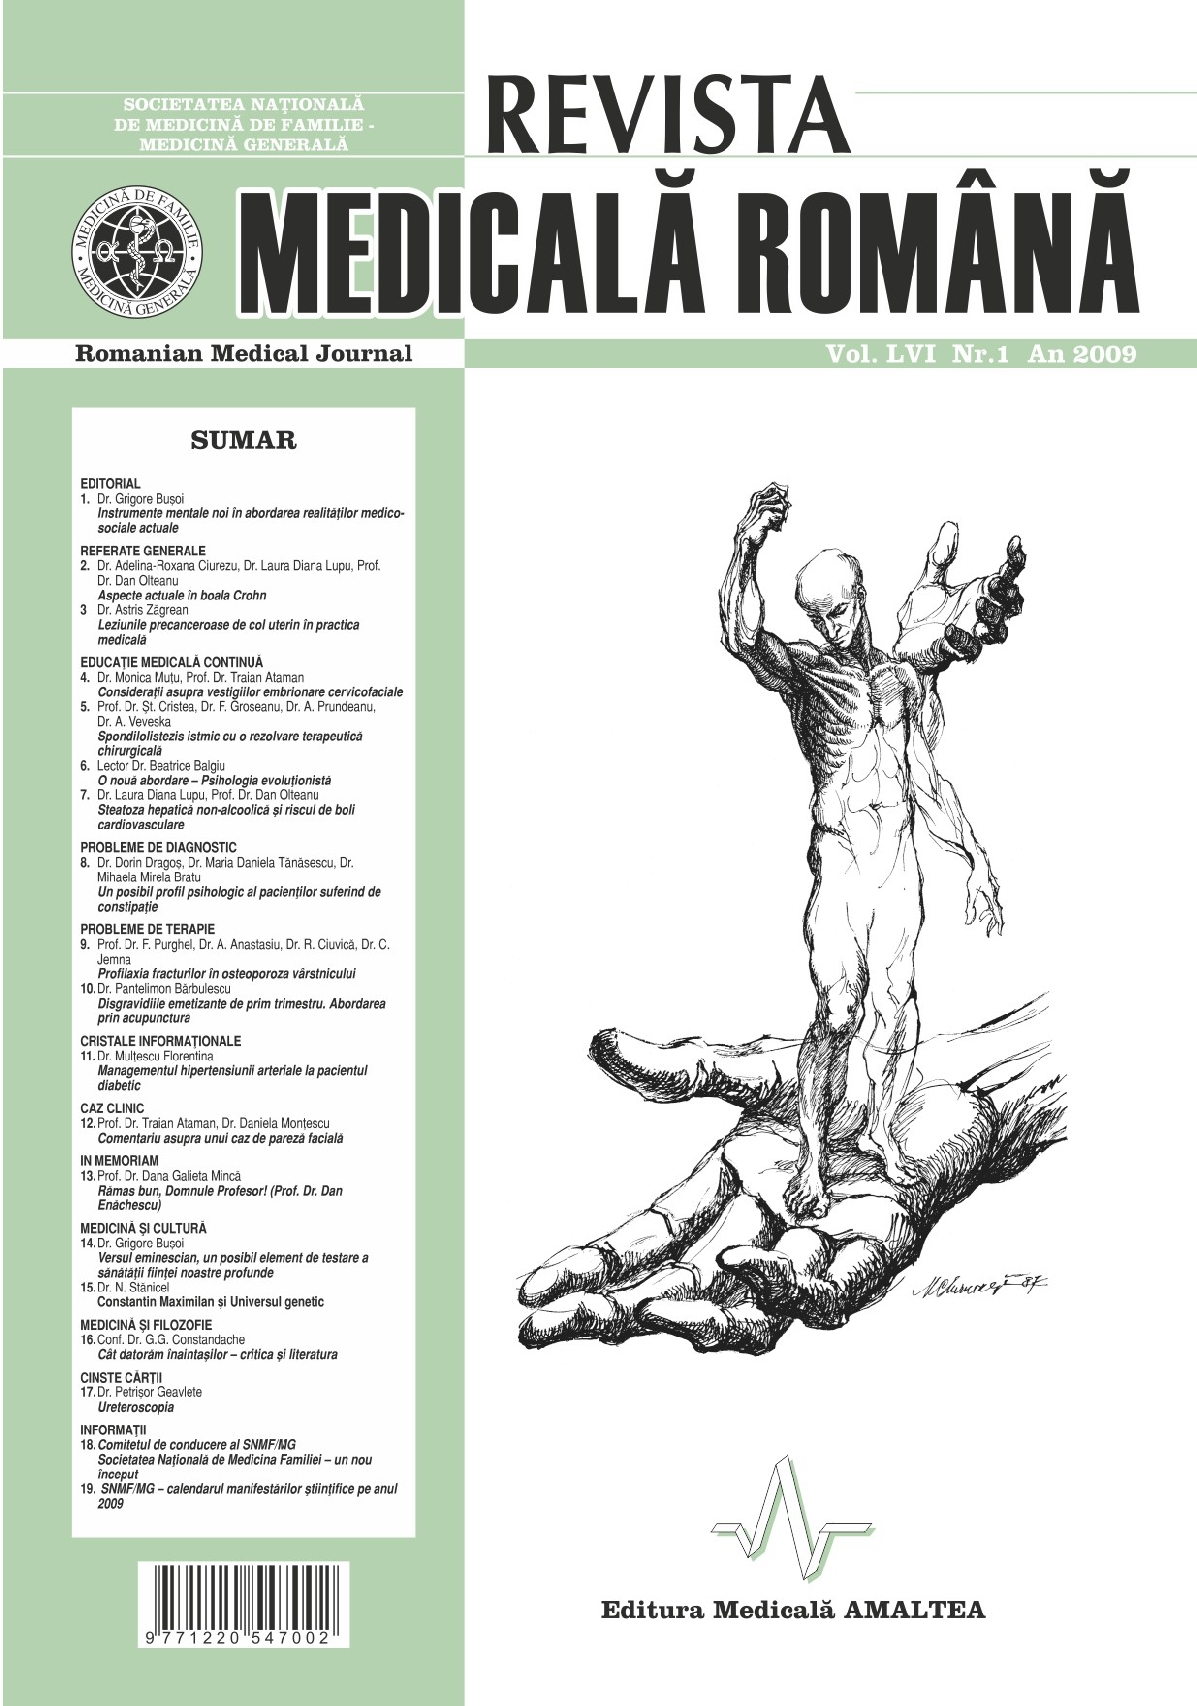 REVISTA MEDICALA ROMANA - Romanian Medical Journal, Vol. LVI, No. 1, Year 2009